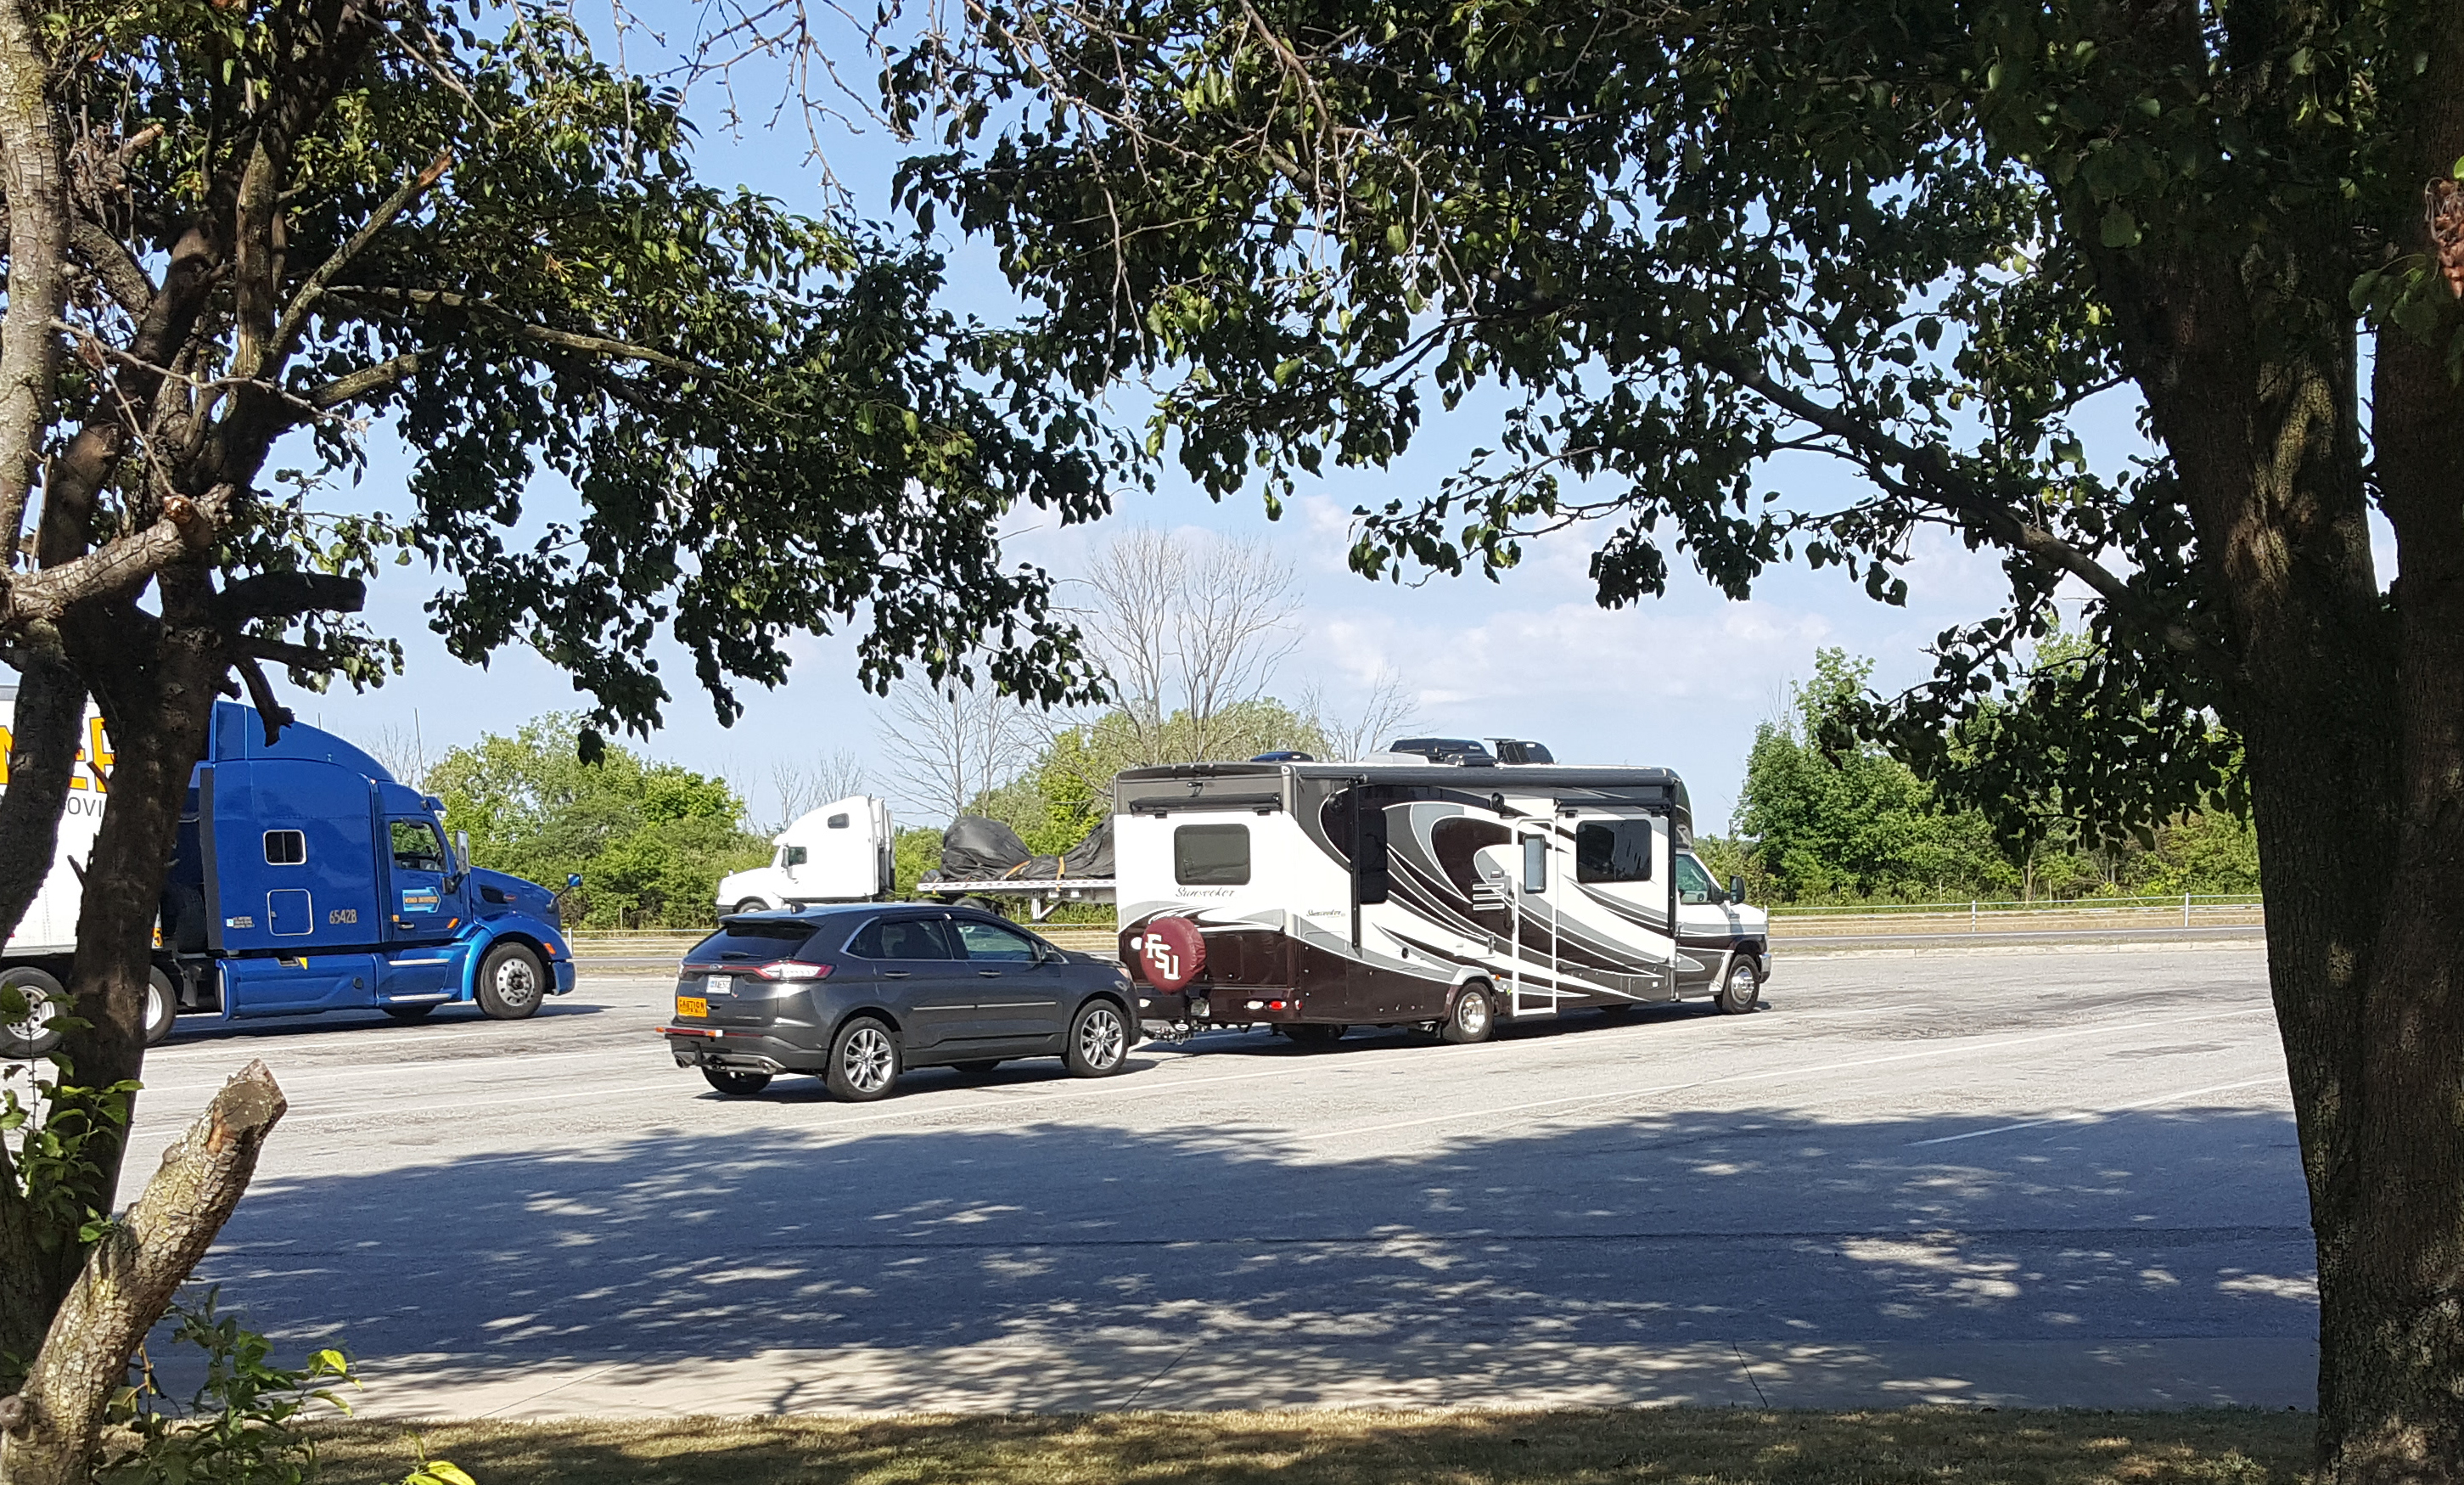 2016 Ford Edge - Toads-Towed Behind Motorhome - FMCA RV Forums – Toad Vehicle Wiring Harness on toad blue, toad diagram, toad body, toad painting, toad parts, toad control,